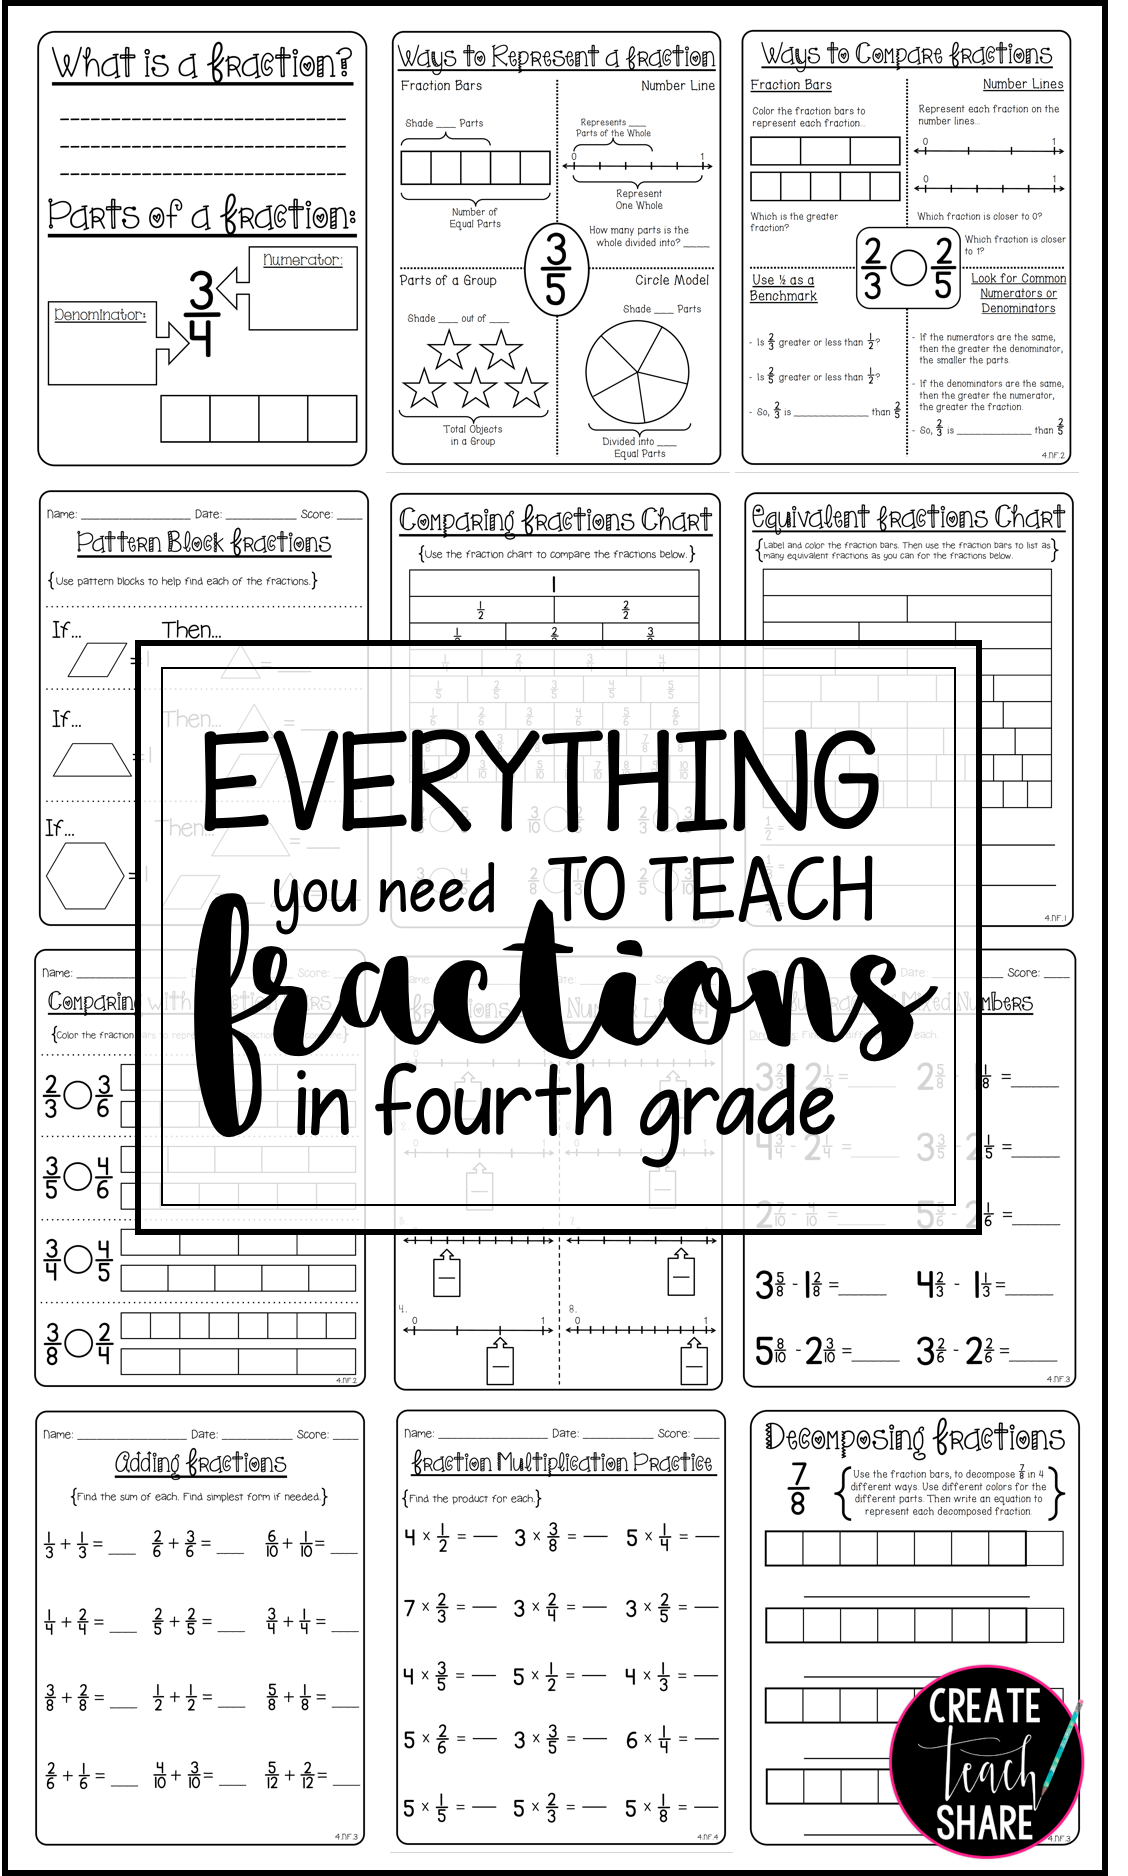 80 Pages To Help Teach Fractions In 4th Grade With